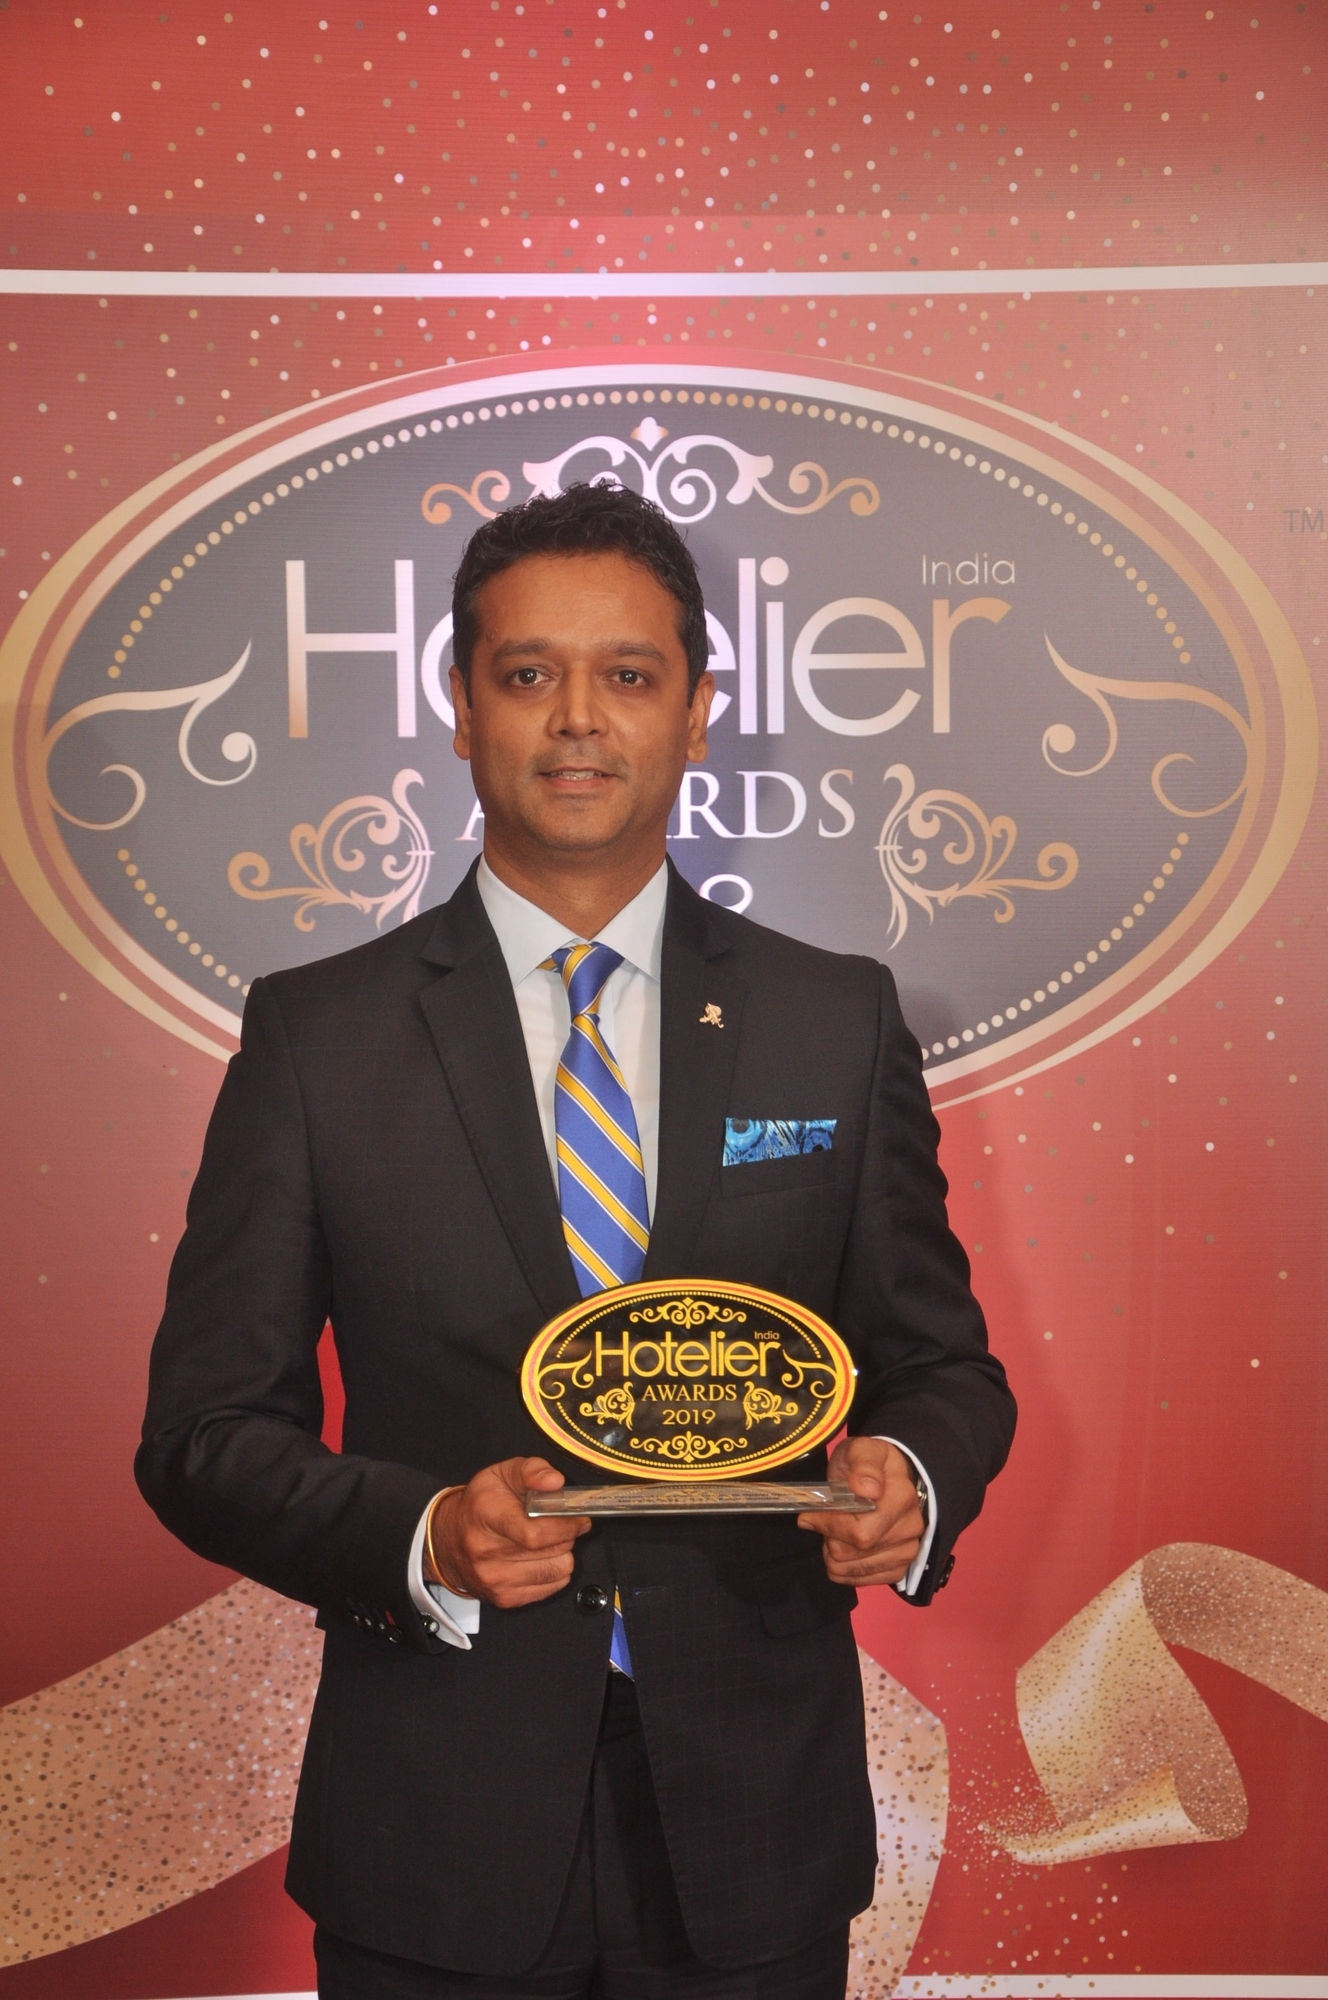 11th Hotelier India Awards, Sales Person of the Year, Sales Person of 2019, Hotelier India, The St. Regis Mumbai, Saurabh Dube